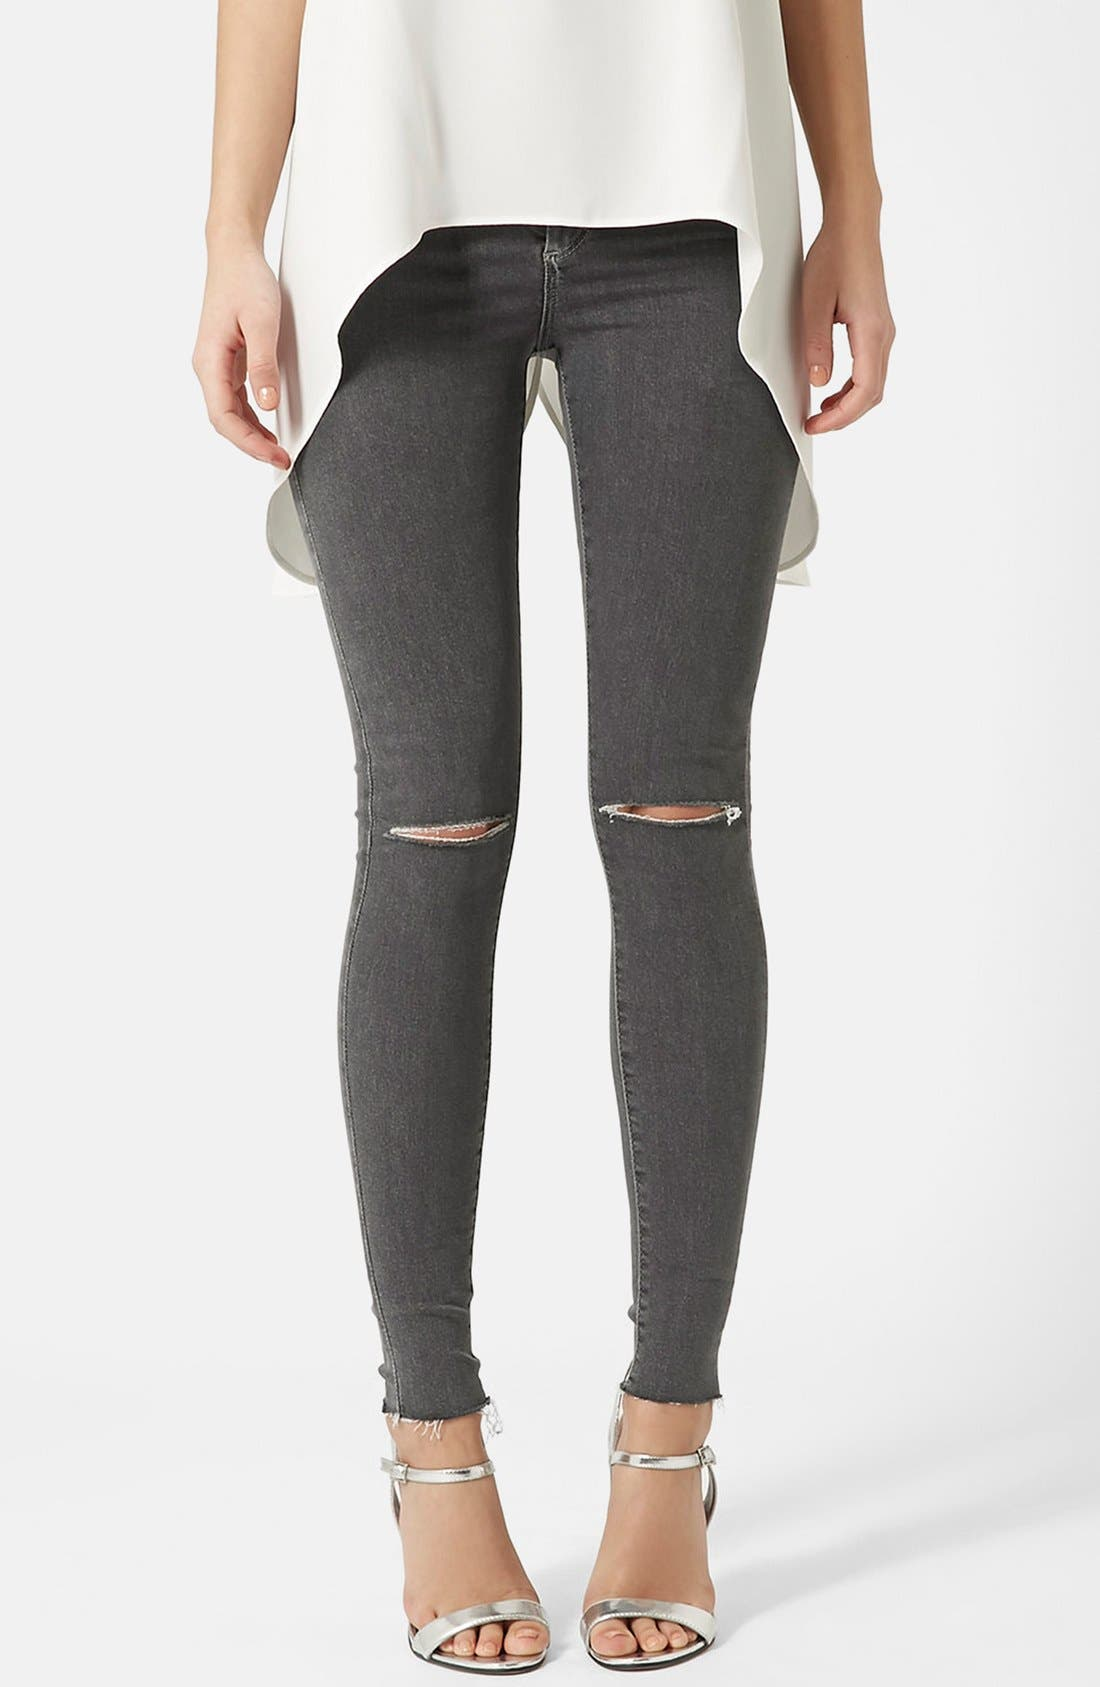 Alternate Image 1 Selected - Topshop Moto 'Joni' Ripped Skinny Jeans (Grey) Regular and Short